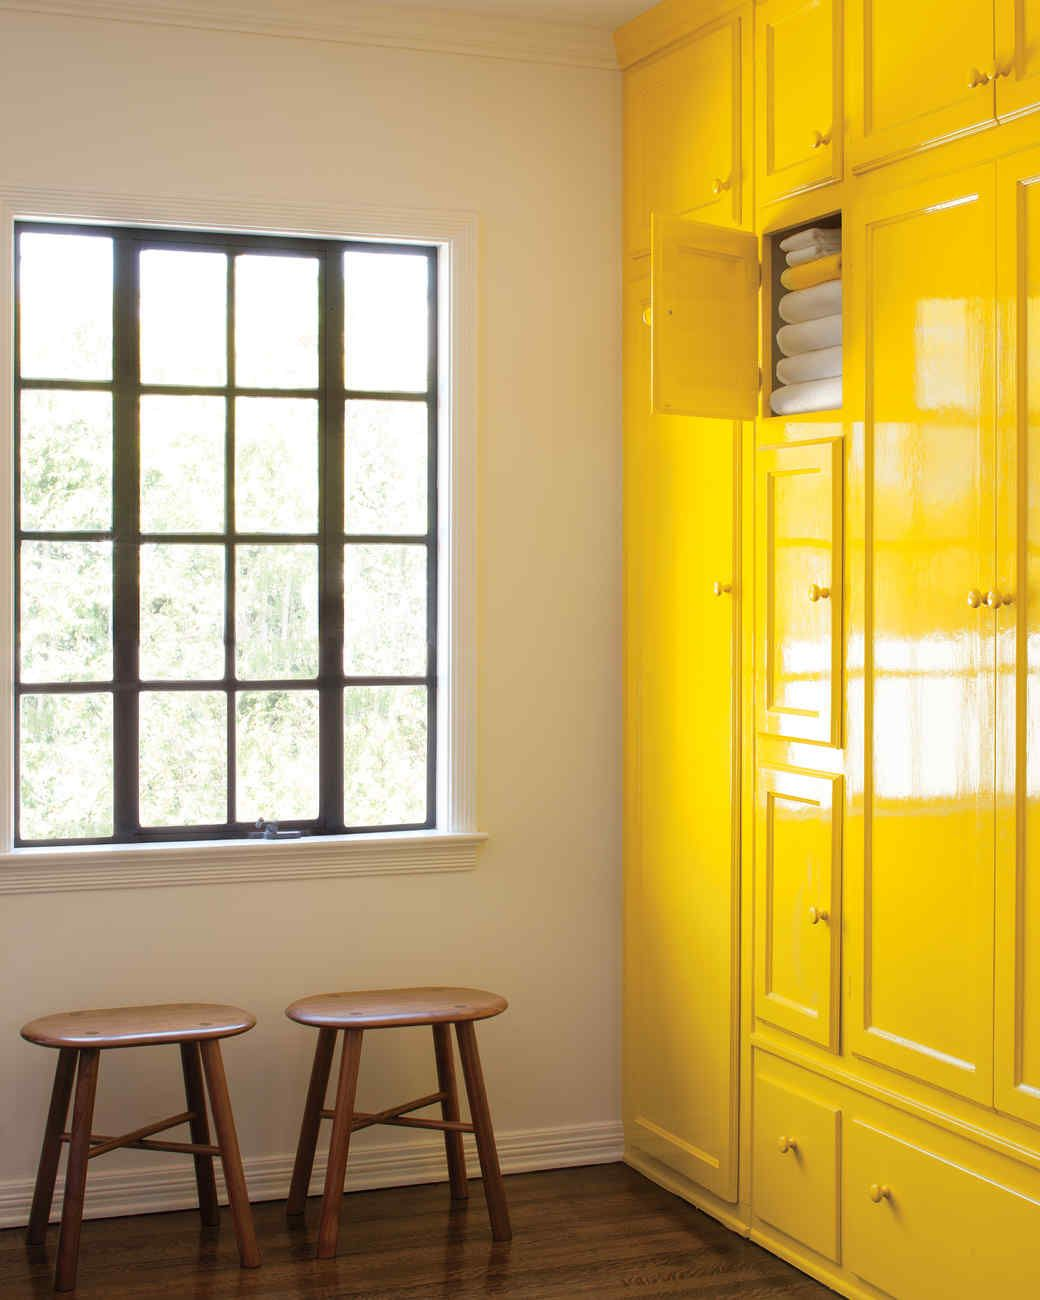 Decorating with Bright Colors | Yellow cabinets, Teal walls and ...